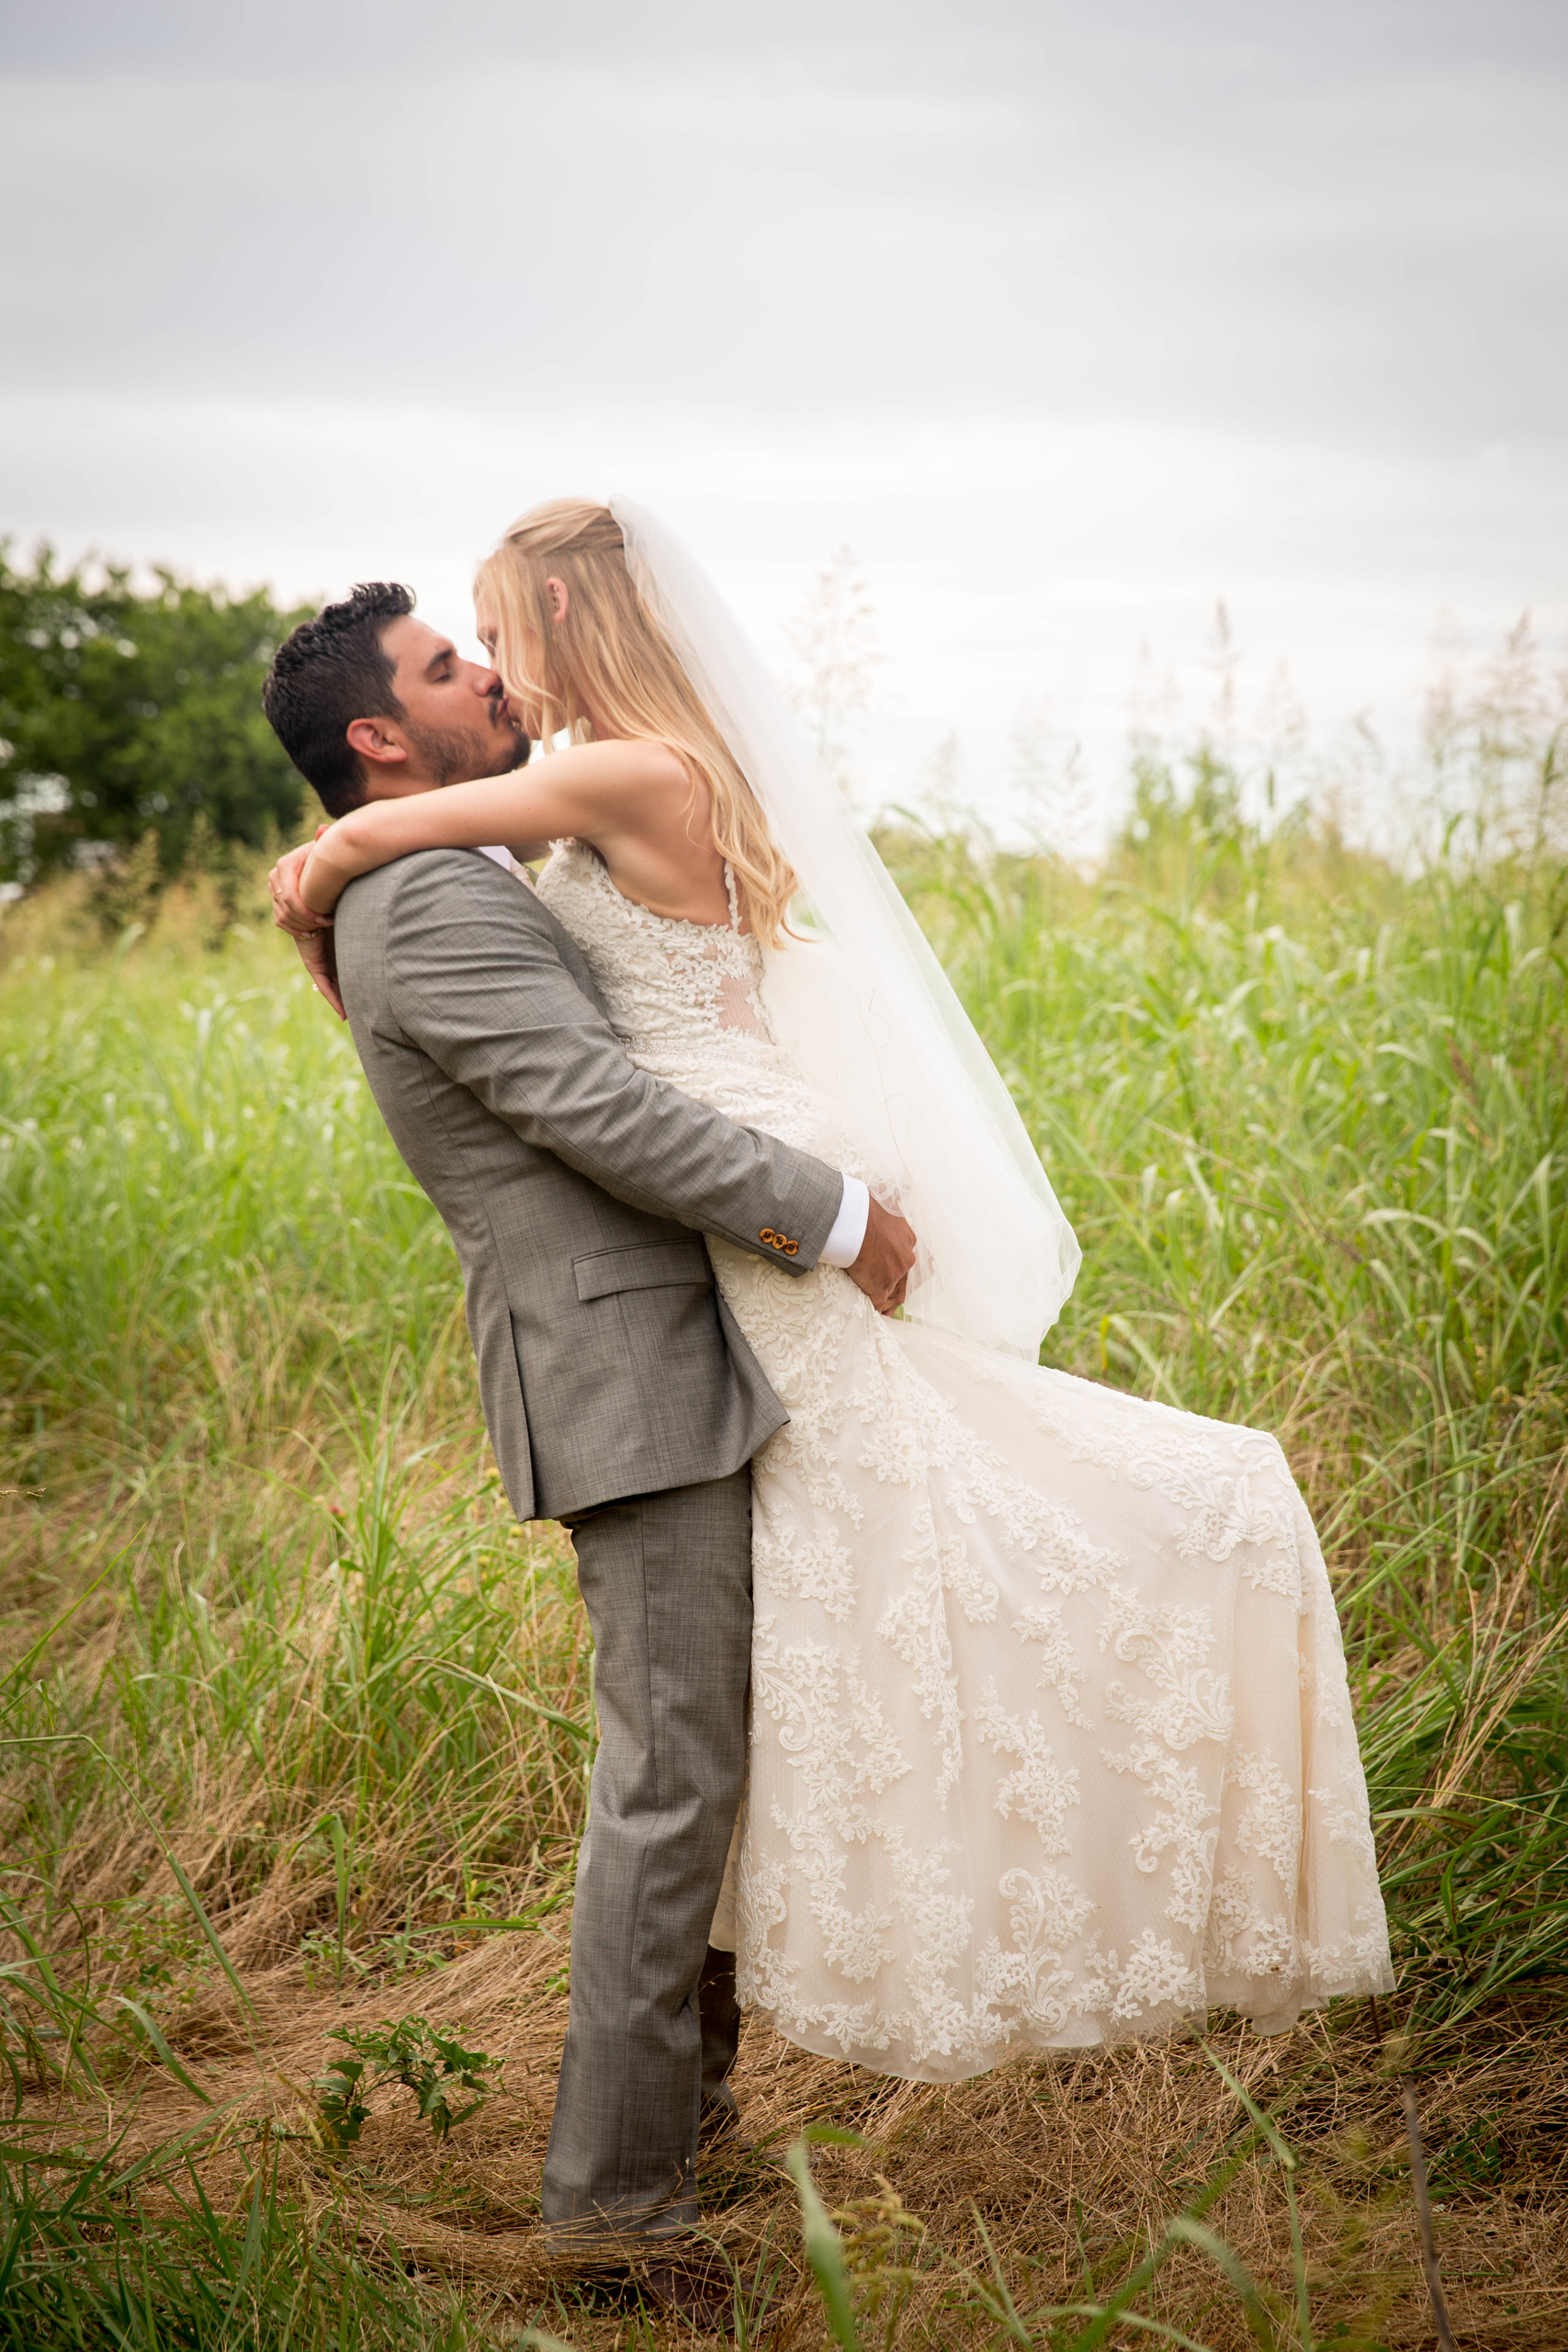 groom wearing a grey suit lifts his blonde bride in the air to kiss her in a field outside of their wedding venue